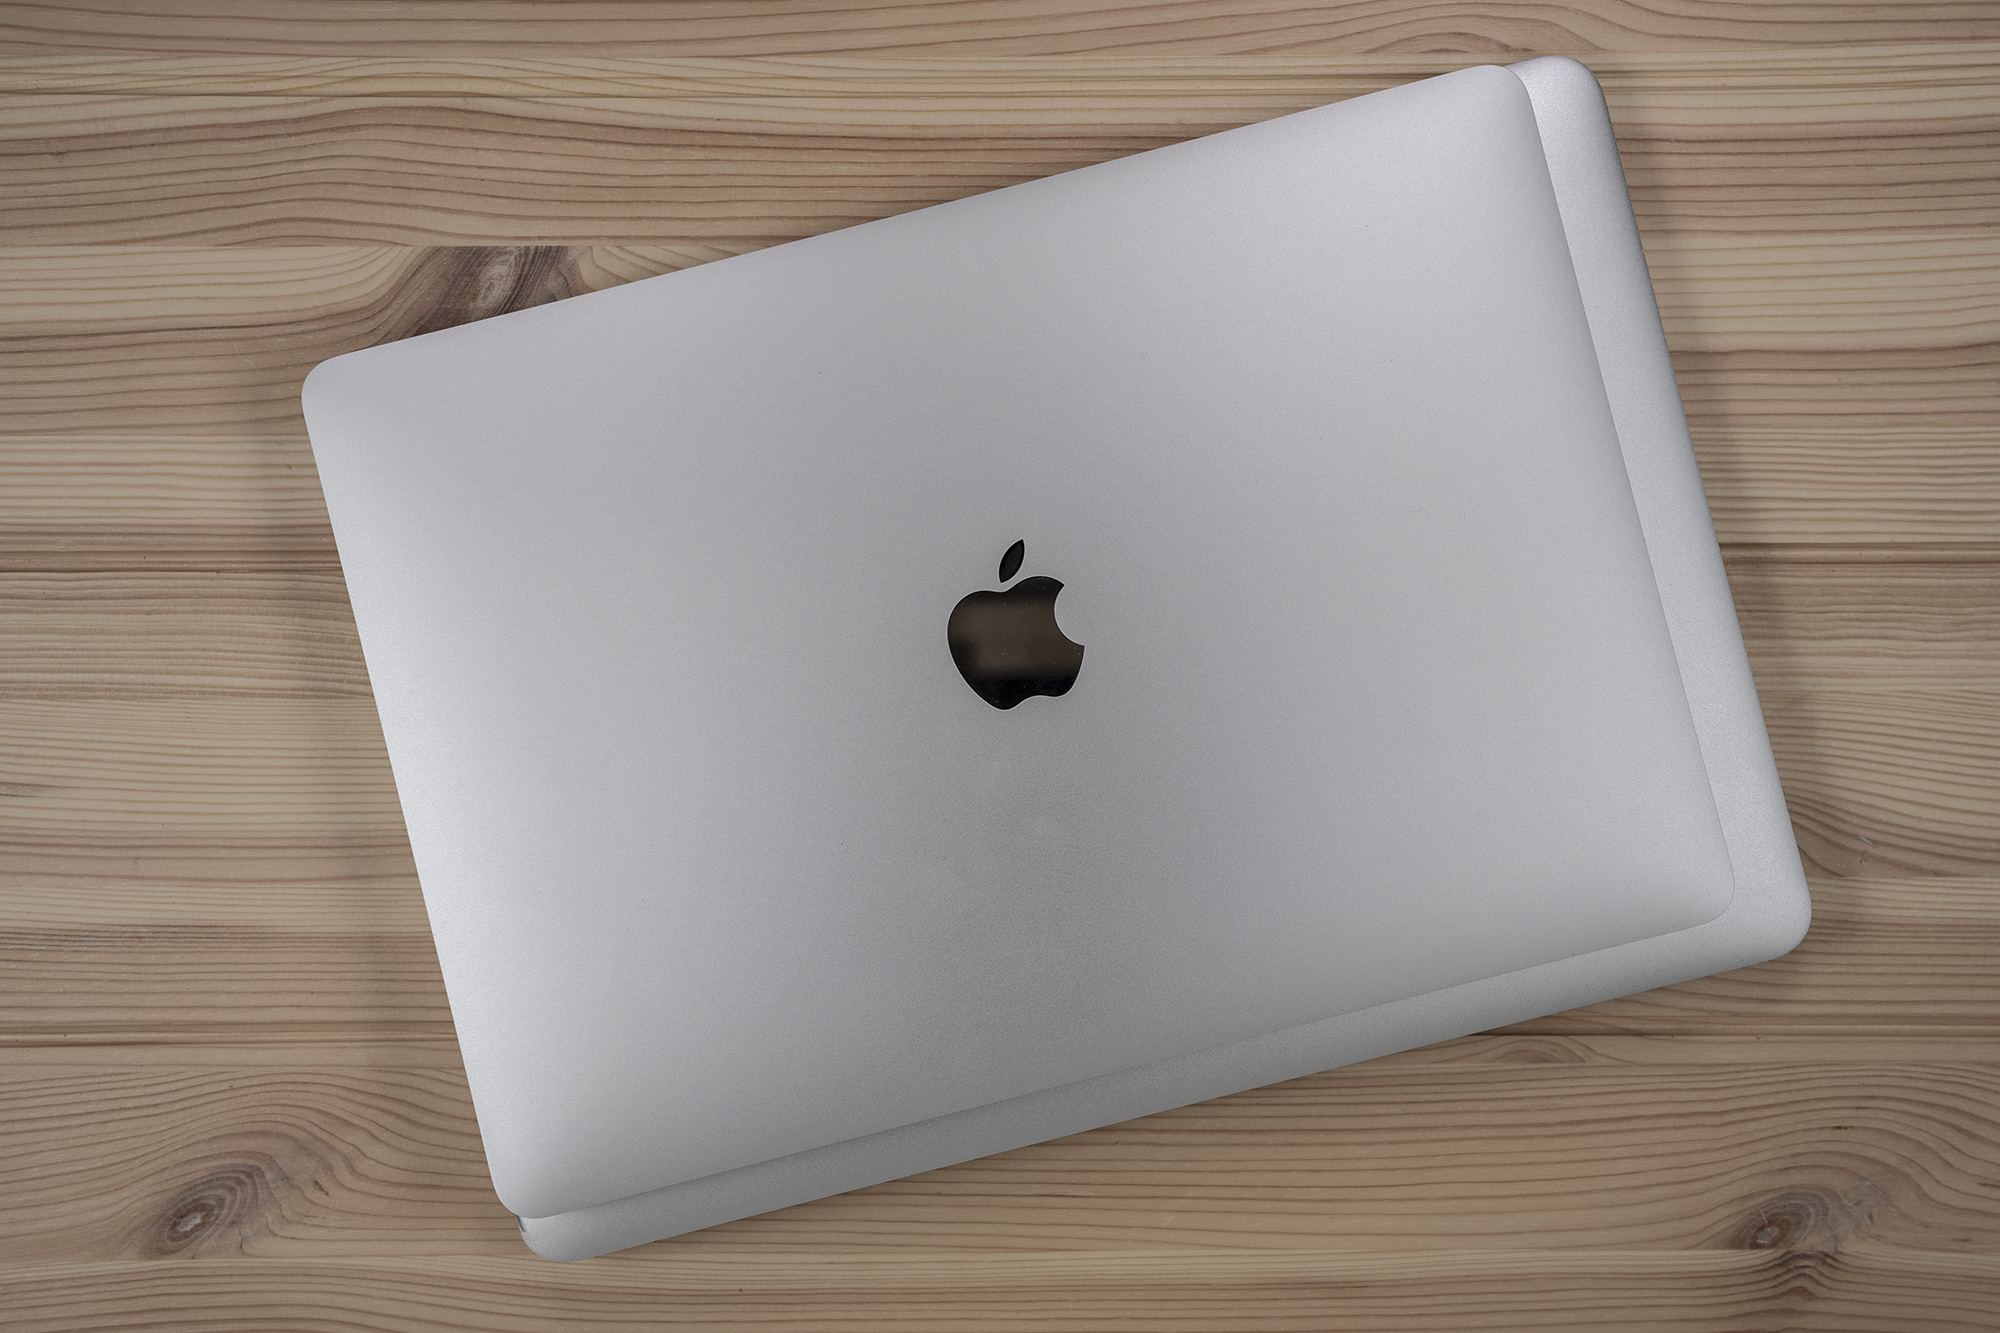 MacBook Air overhead